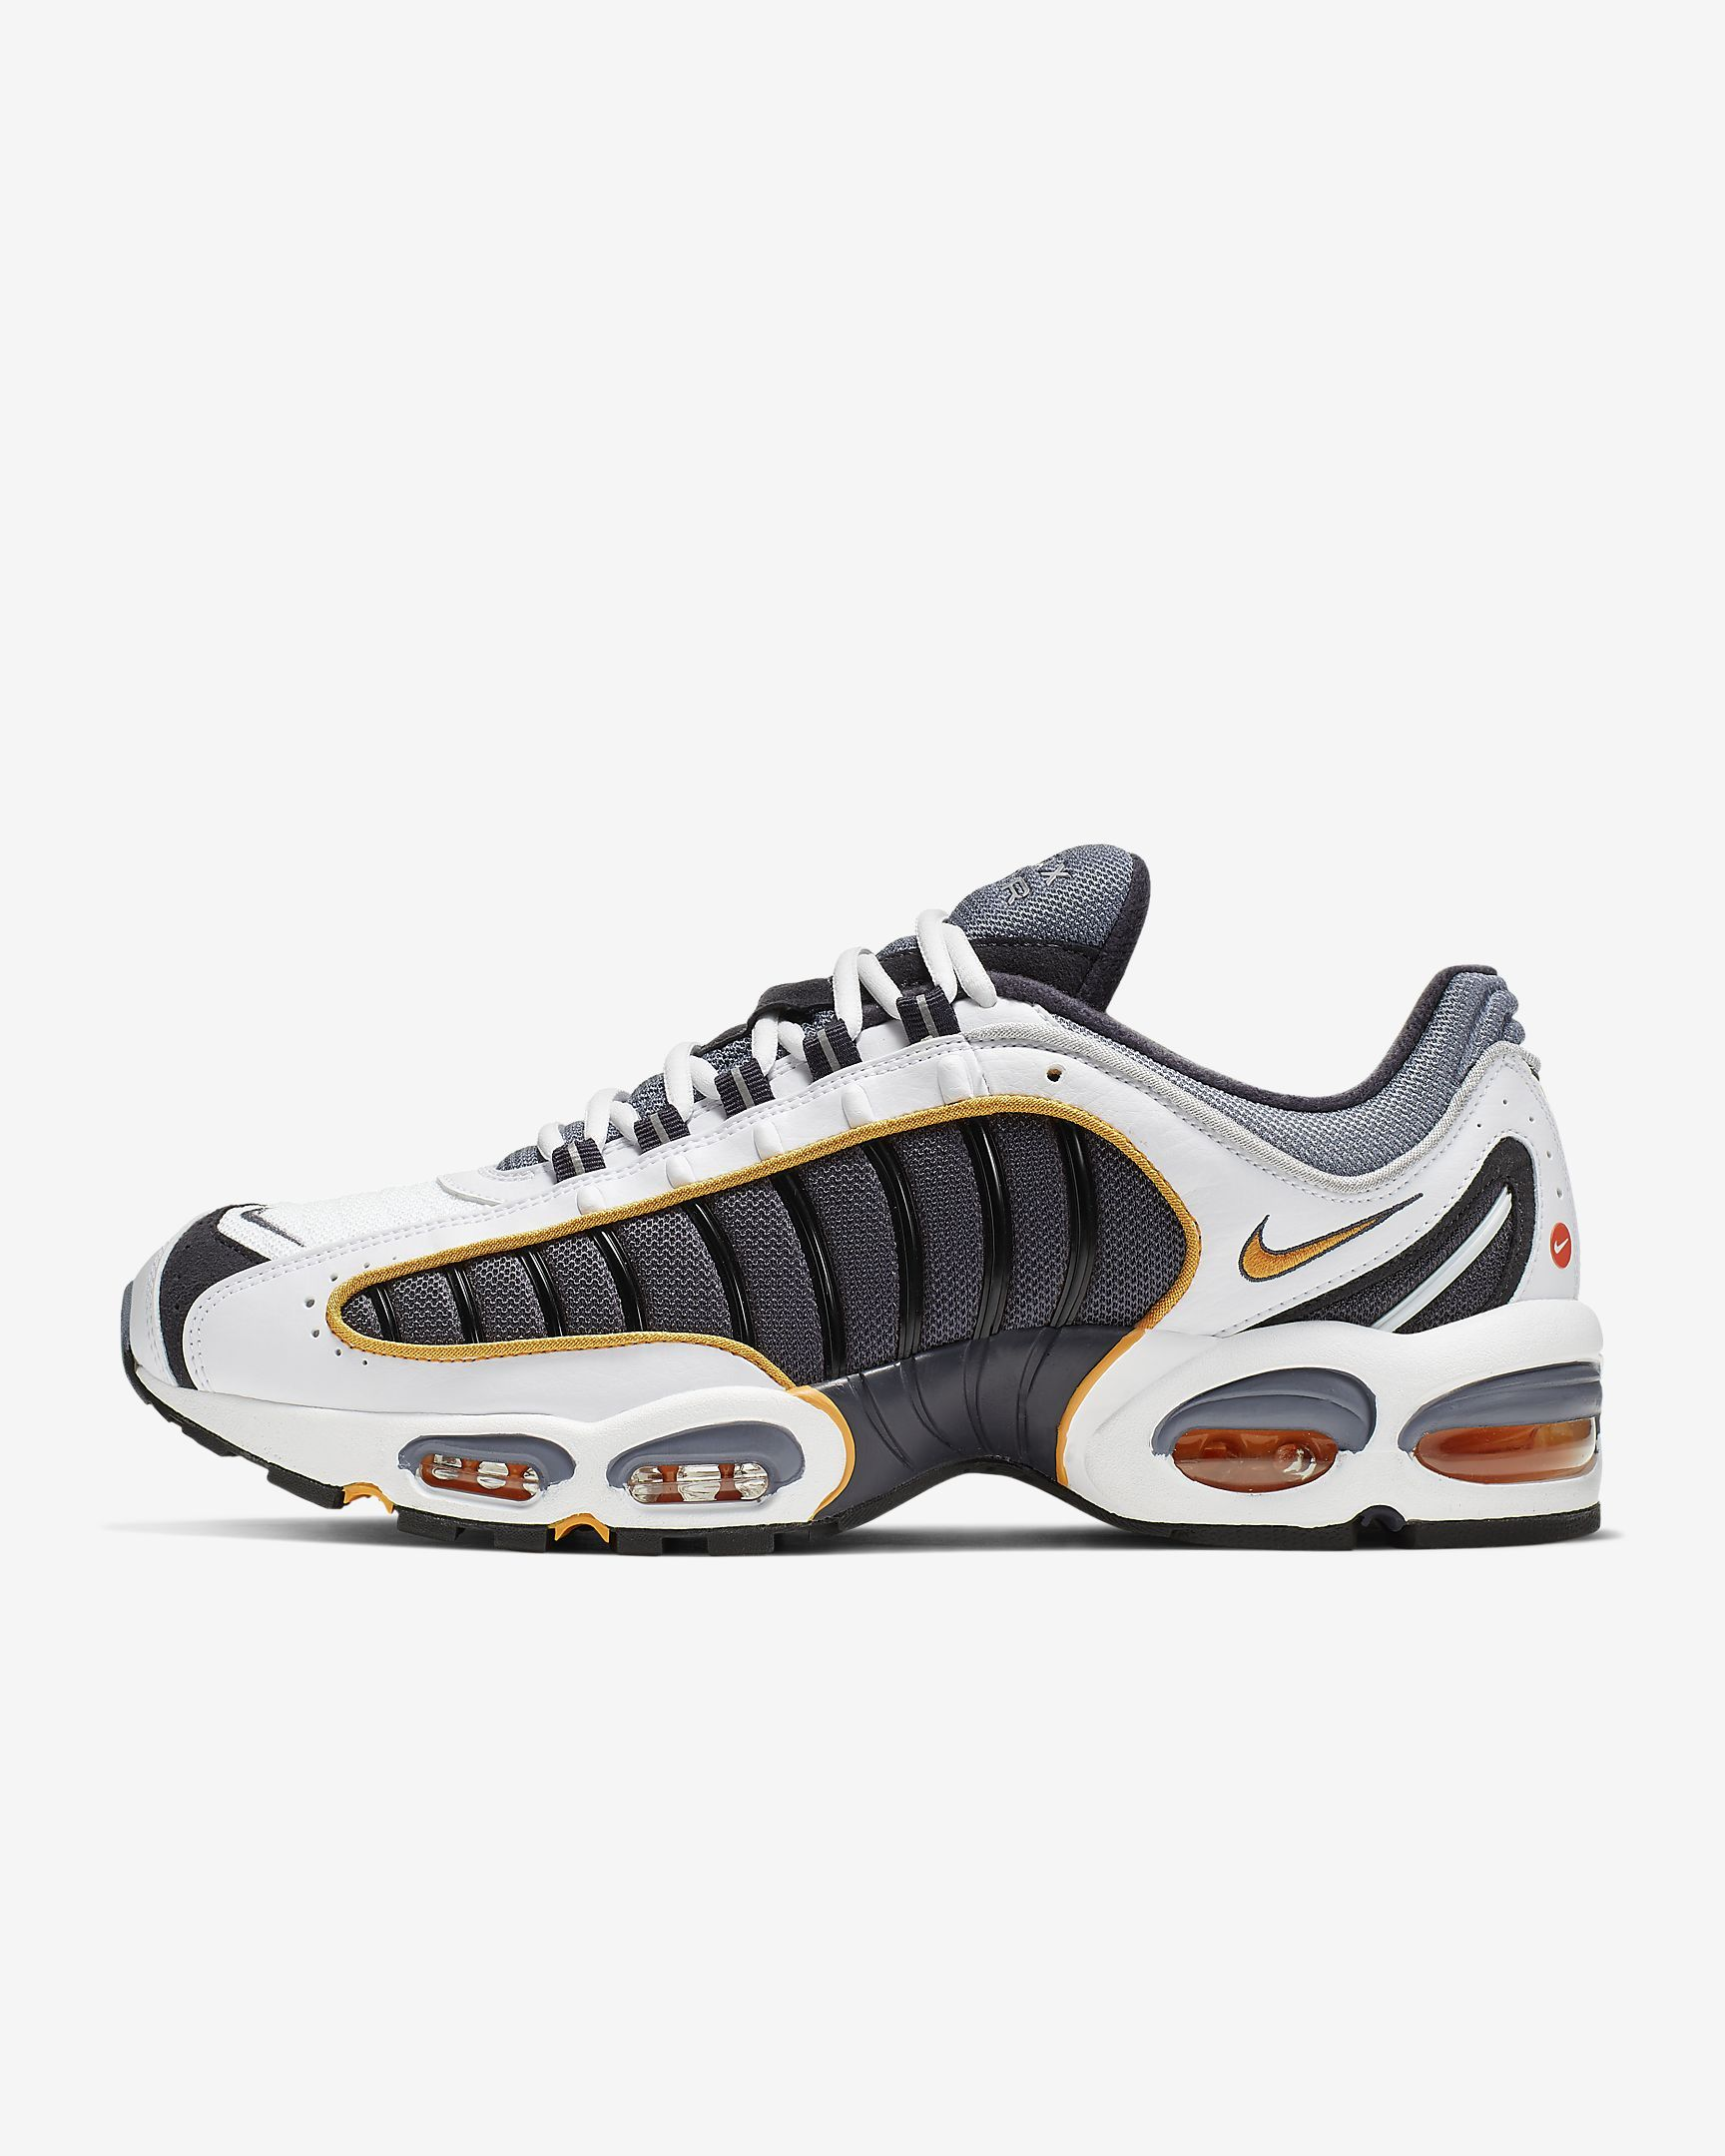 Nike Air Max Tailwind Iv Men S Shoe Nike Com Tags Sneakers Low Tops White Black Yellow Gold Ora Men Shoes With Jeans Nike Air Max Mens Fashion Shoes